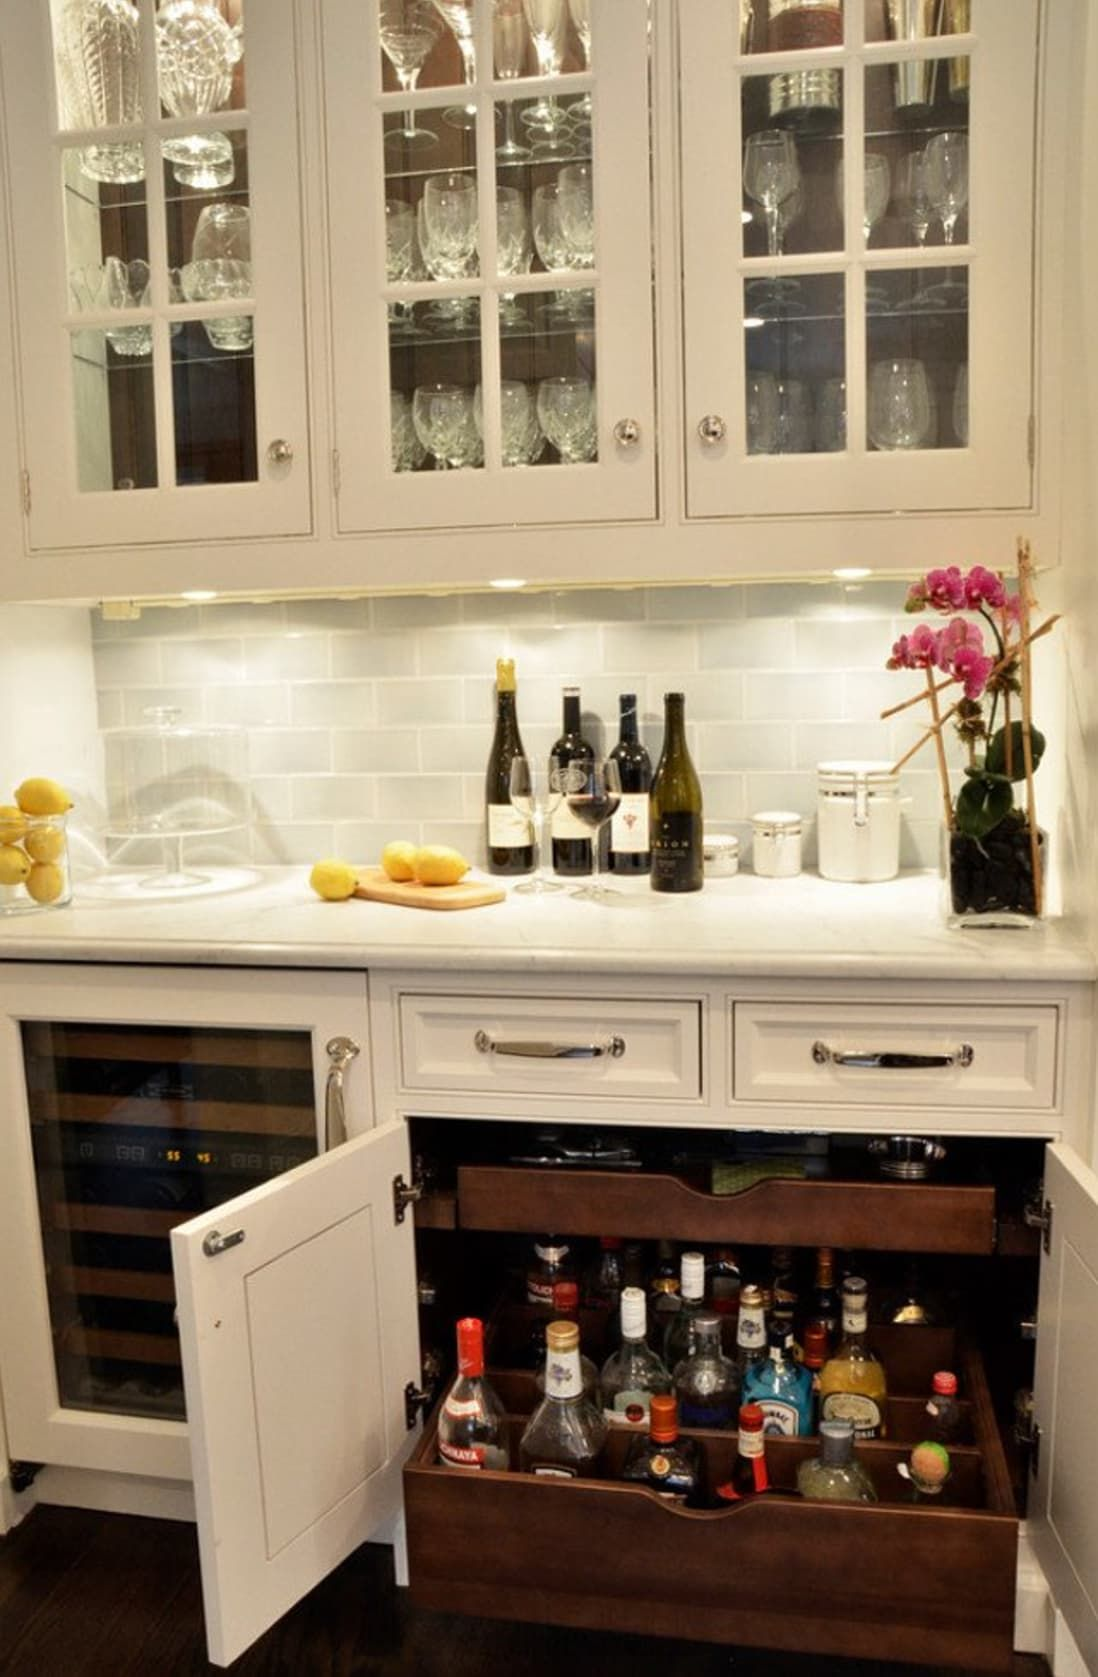 12 Ways To Store Display Your Home Bar In 2020 Kitchen Remodel Home Kitchens Kitchen Bar